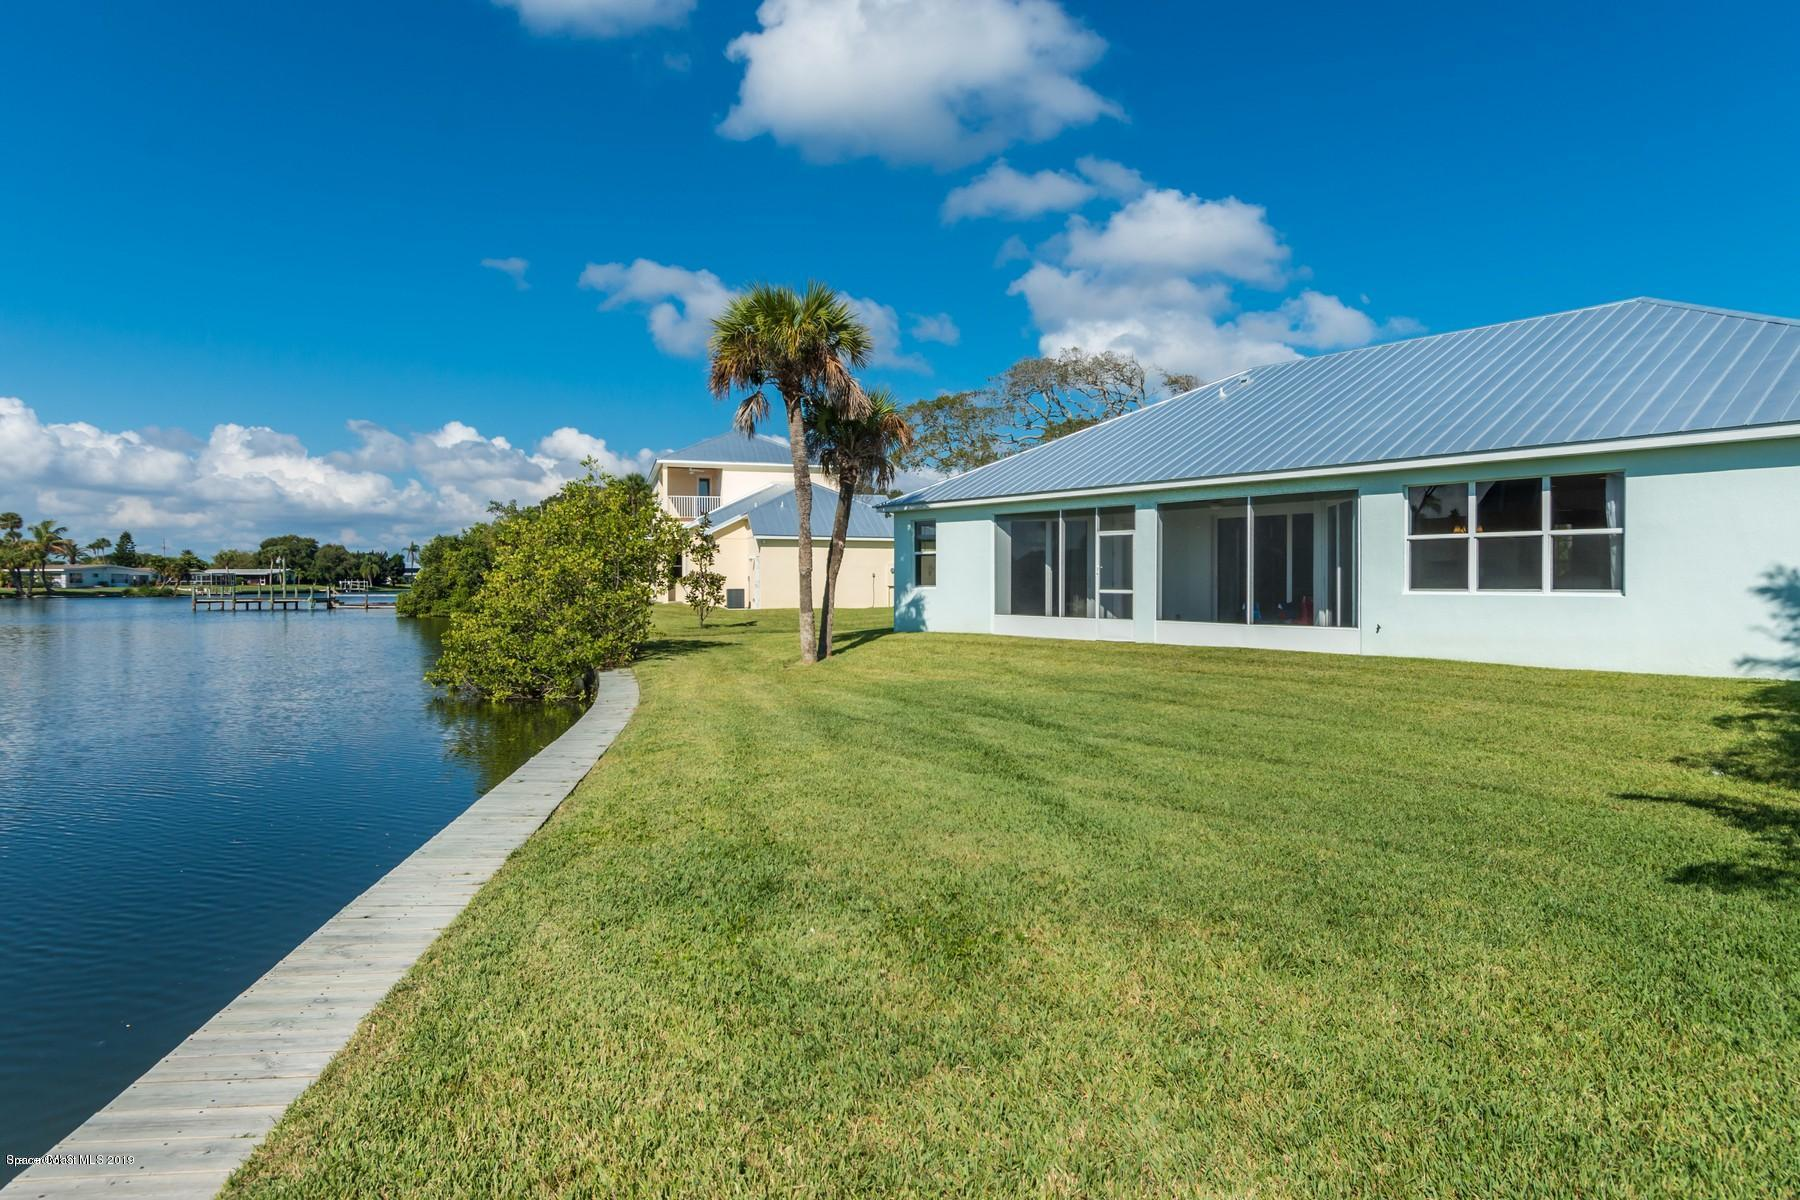 Single Family Home for Sale at 412 N 1st 412 N 1st Cocoa Beach, Florida 32931 United States